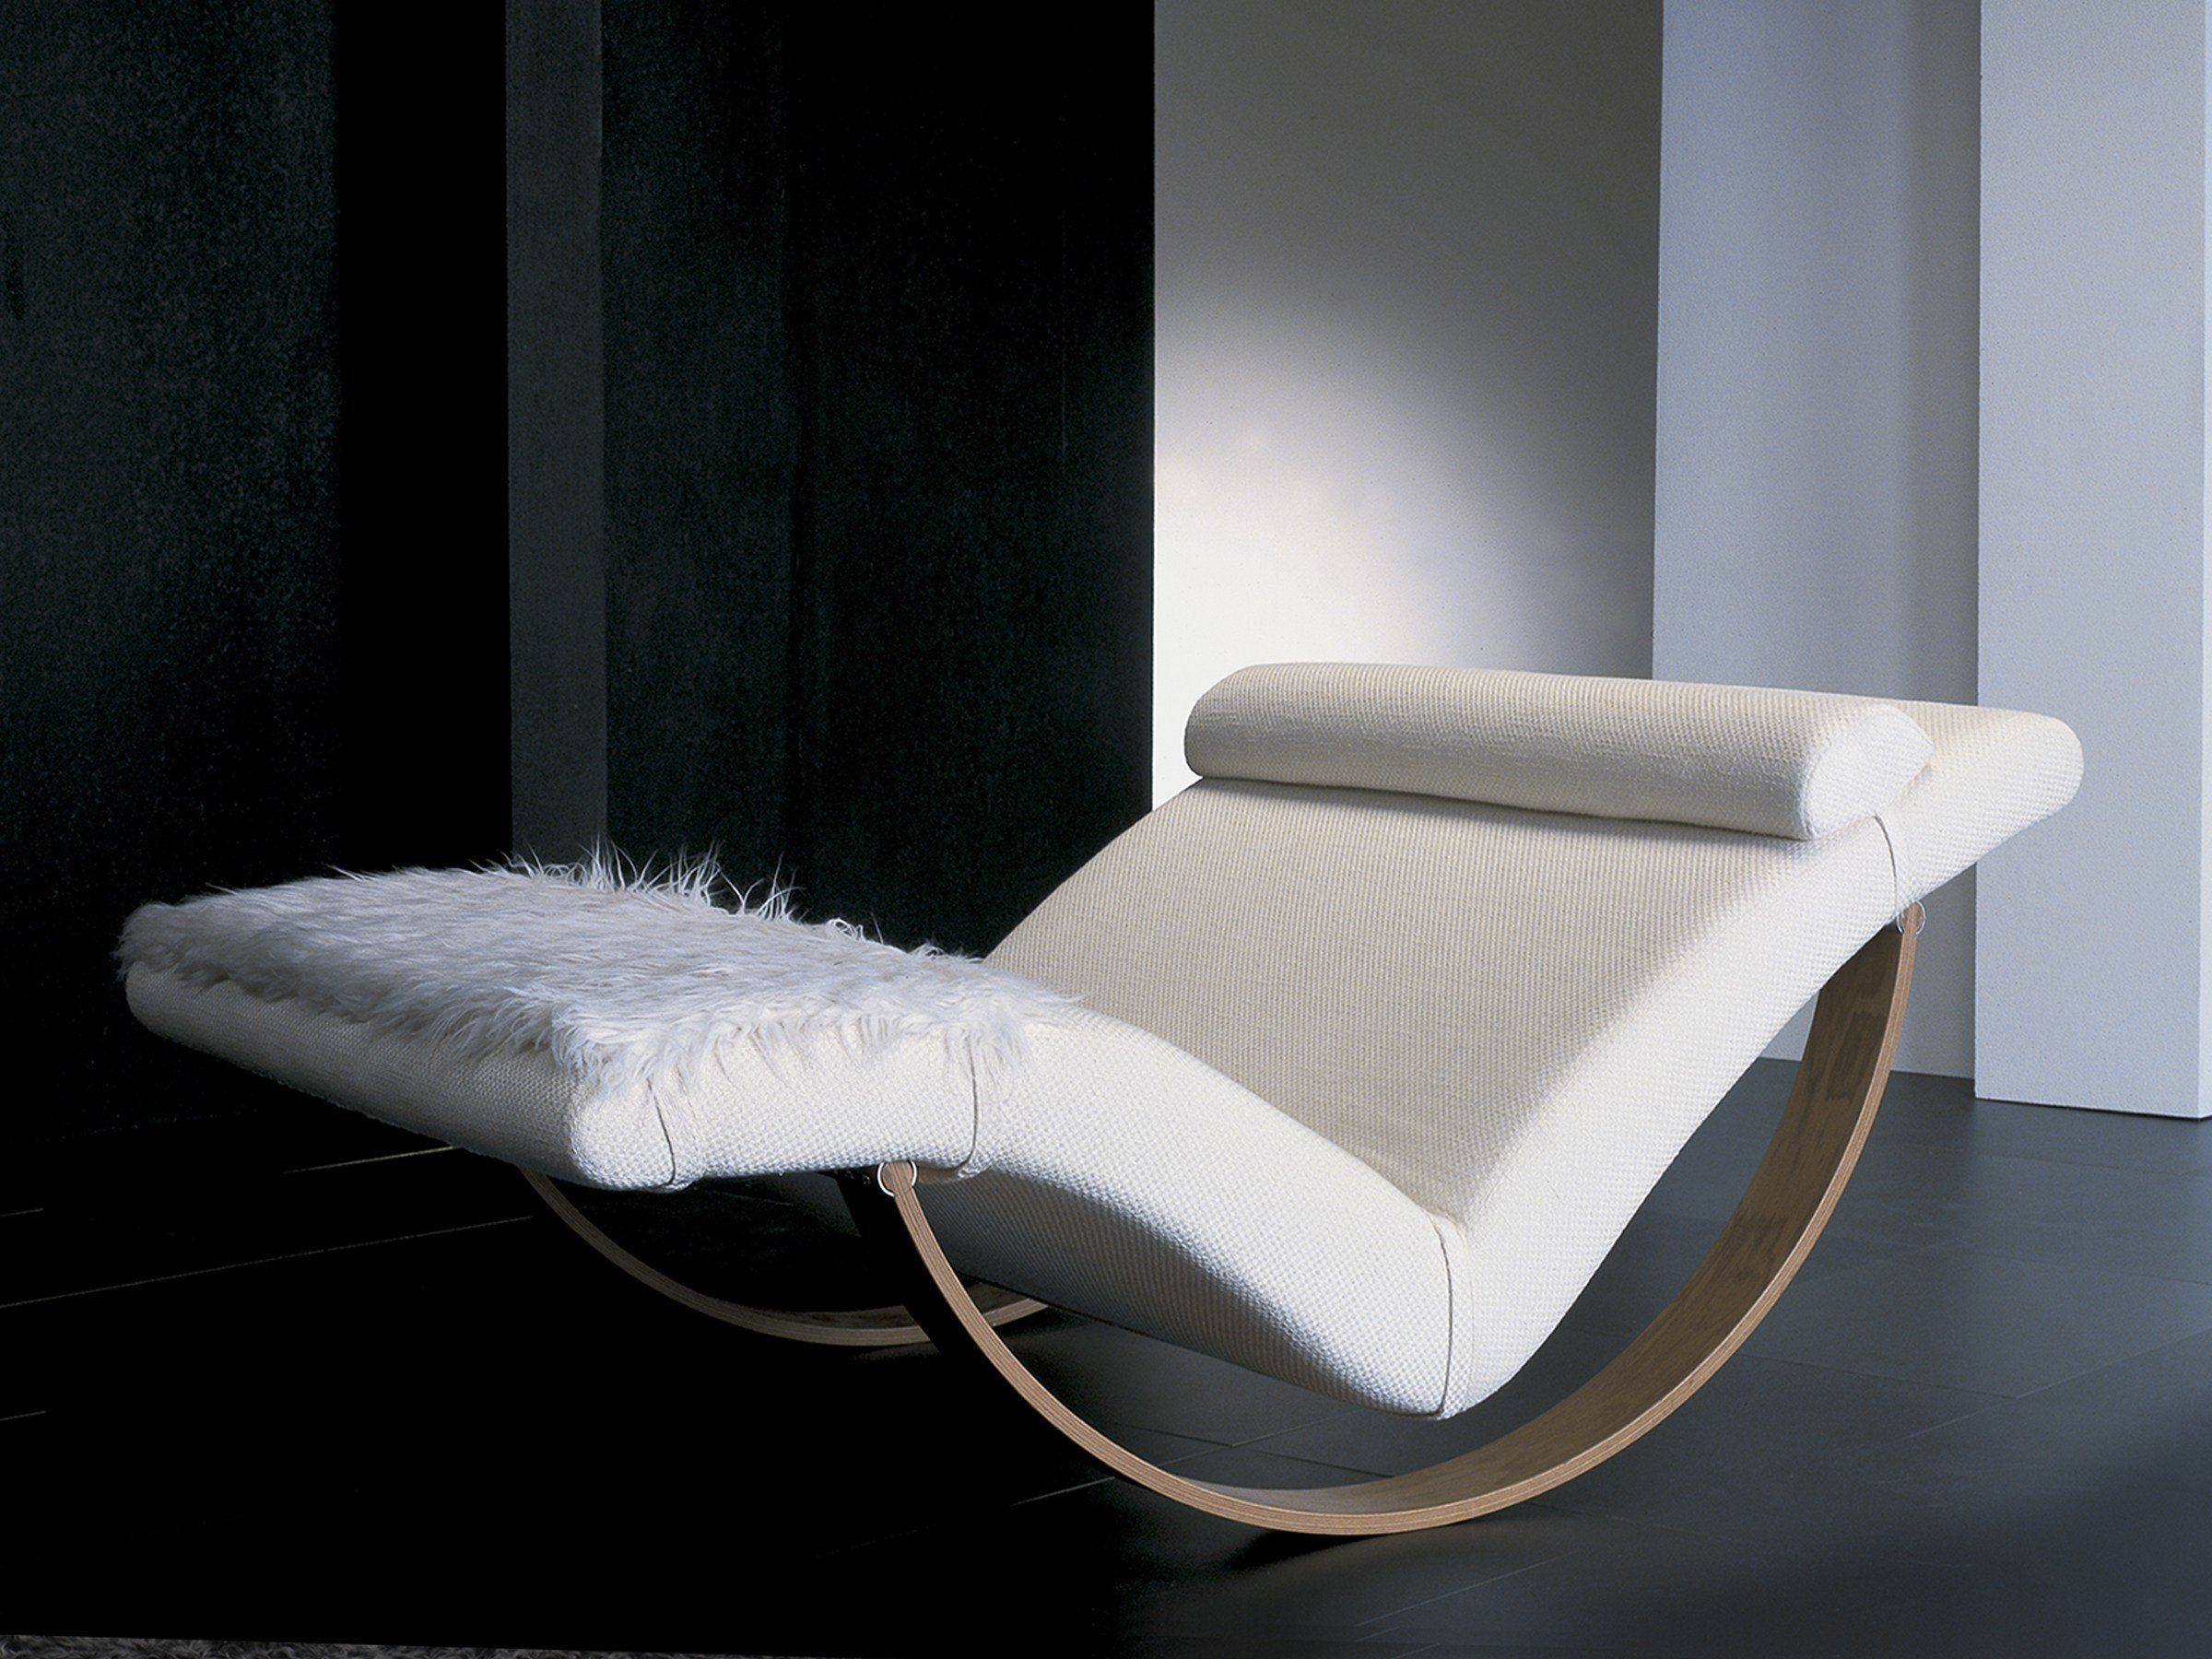 chaise longue estofada design gabbiano by giovannetti collezioni design carin silva gil. Black Bedroom Furniture Sets. Home Design Ideas